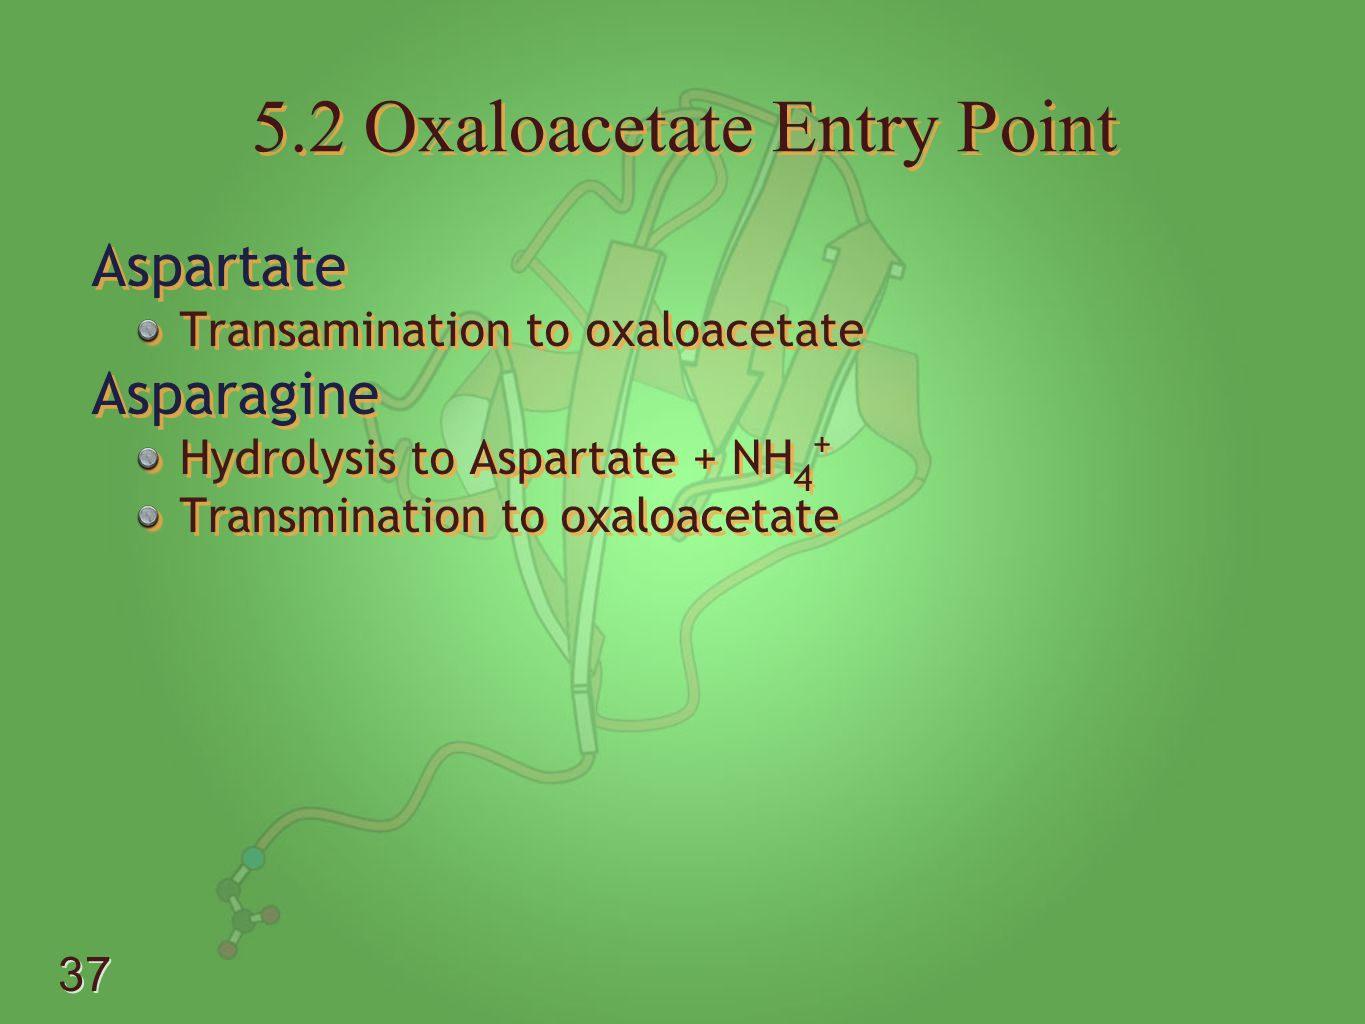 5.2 Oxaloacetate Entry Point